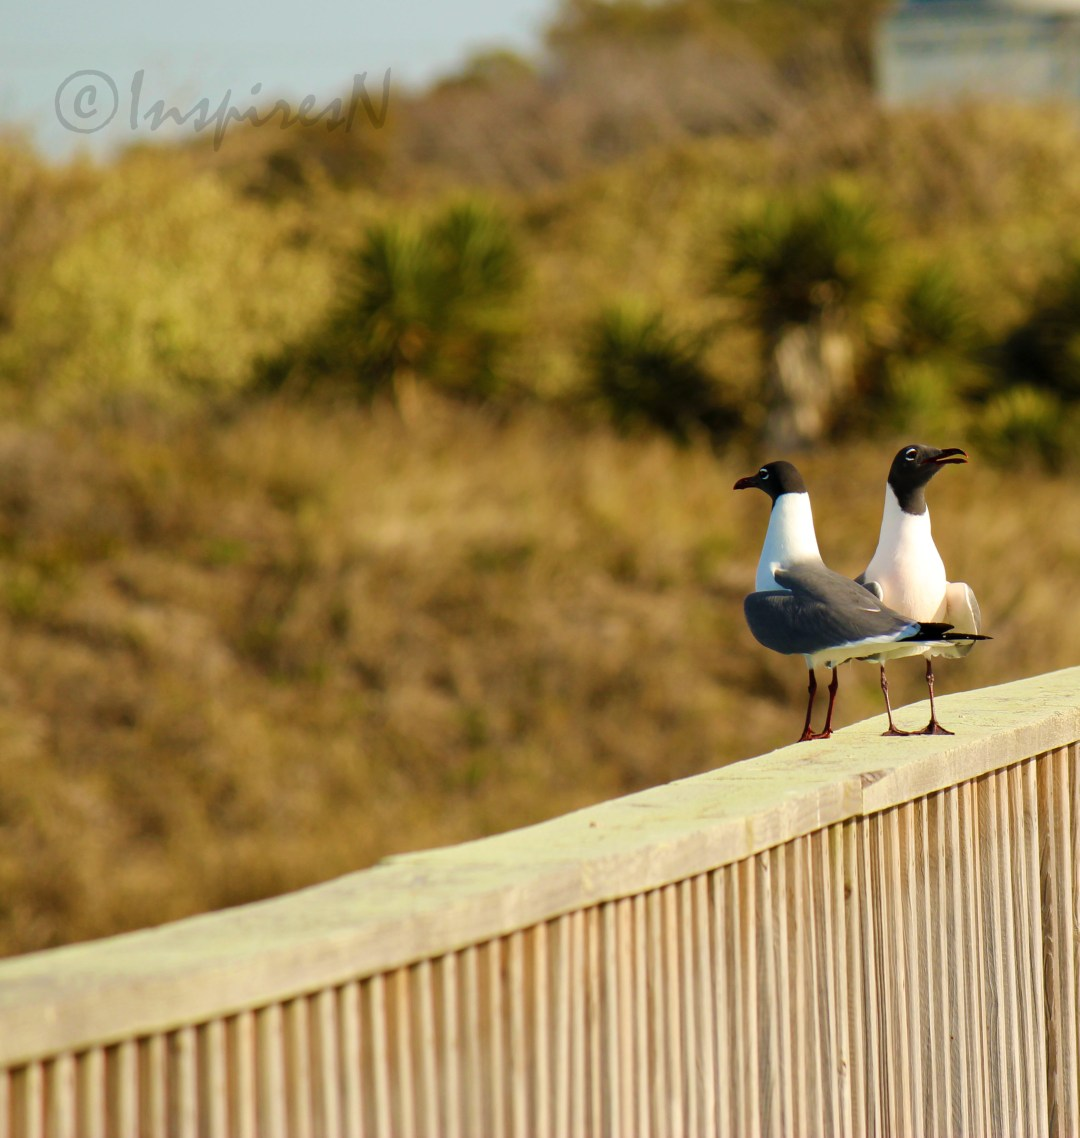 Two laughing seagulls